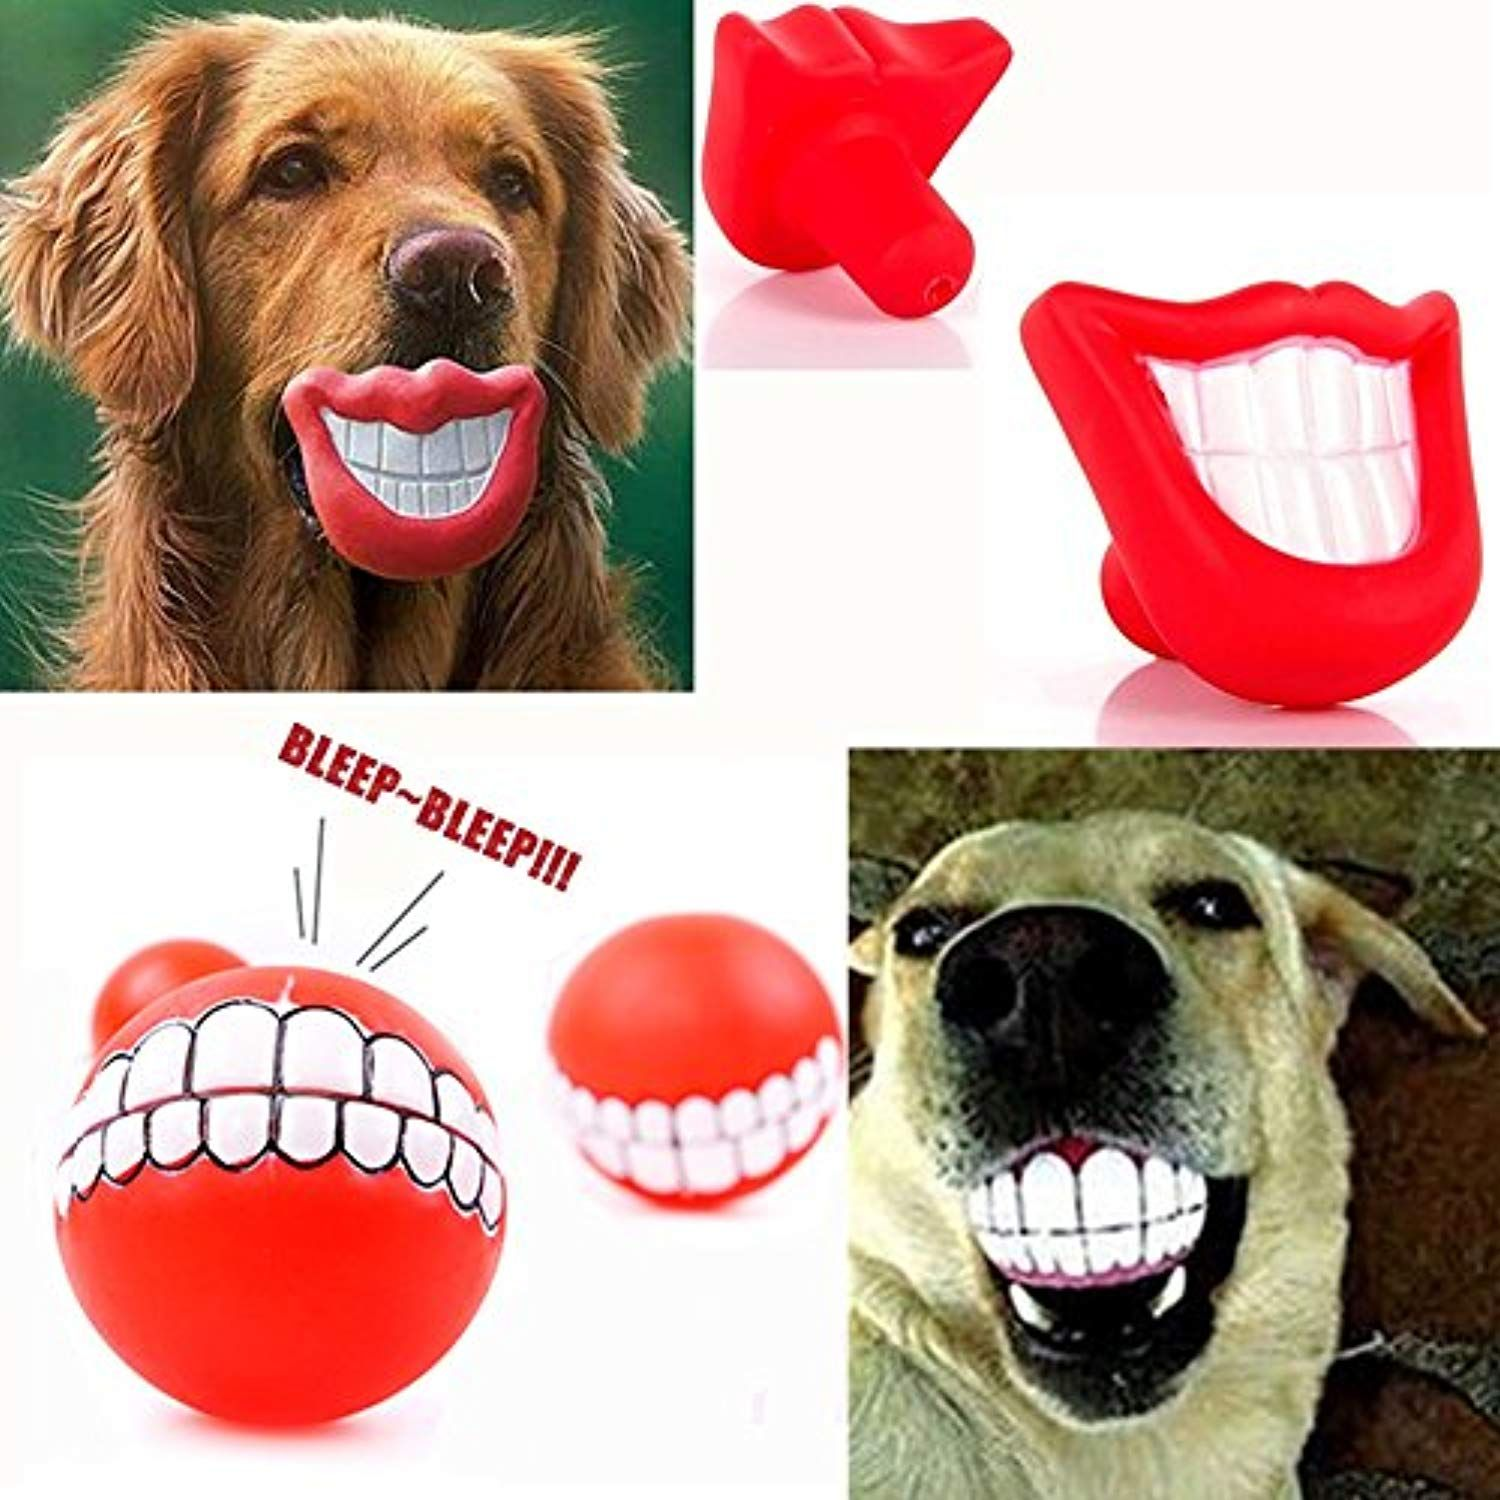 Whomec Puppy Dog Toys Big Red Chewing Squeaky Toy Rubber For Pet